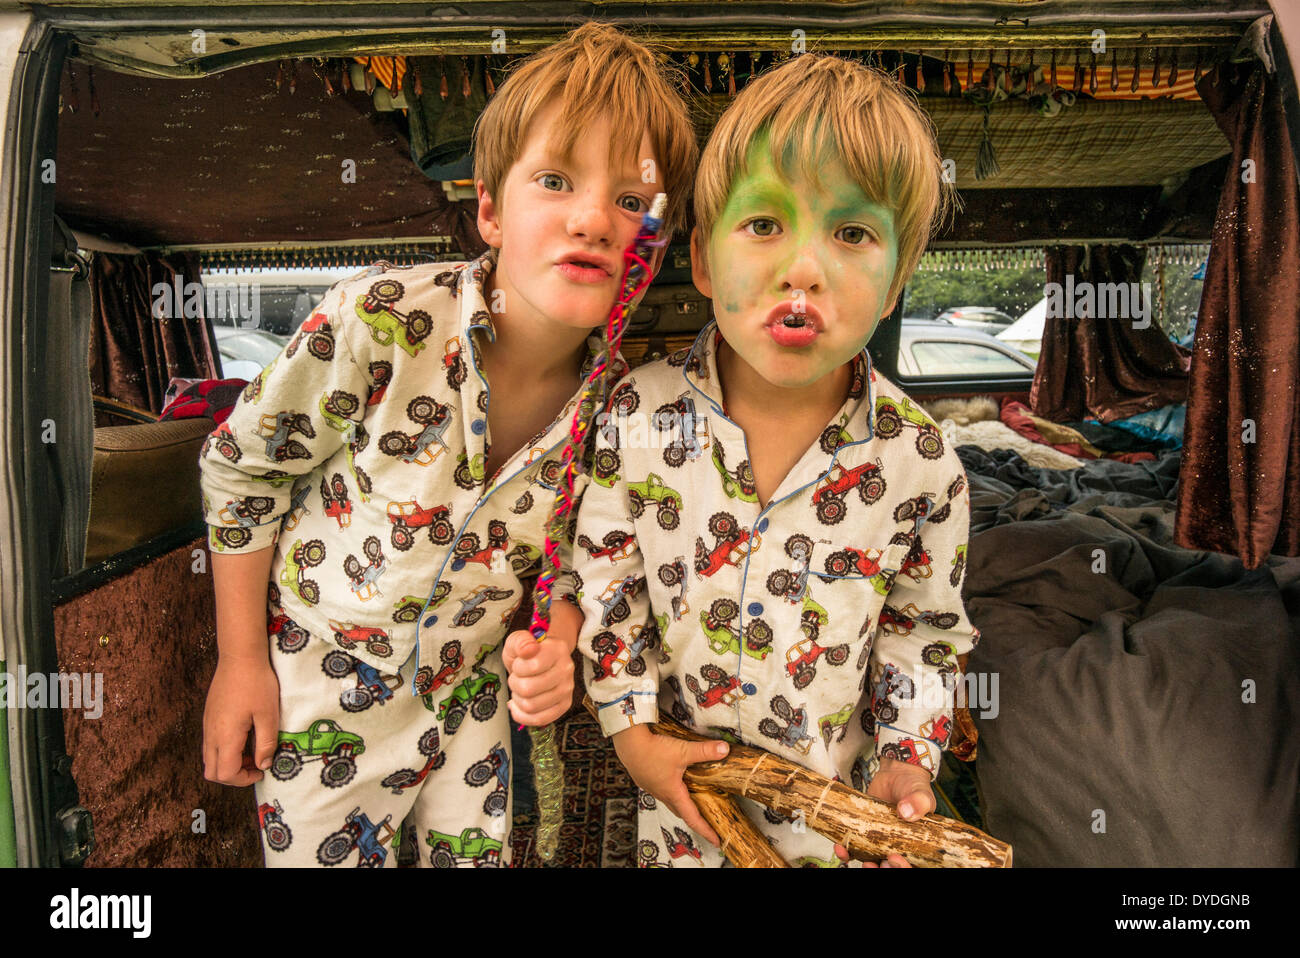 Two boys having fun in a VW camper van  at a festival. - Stock Image